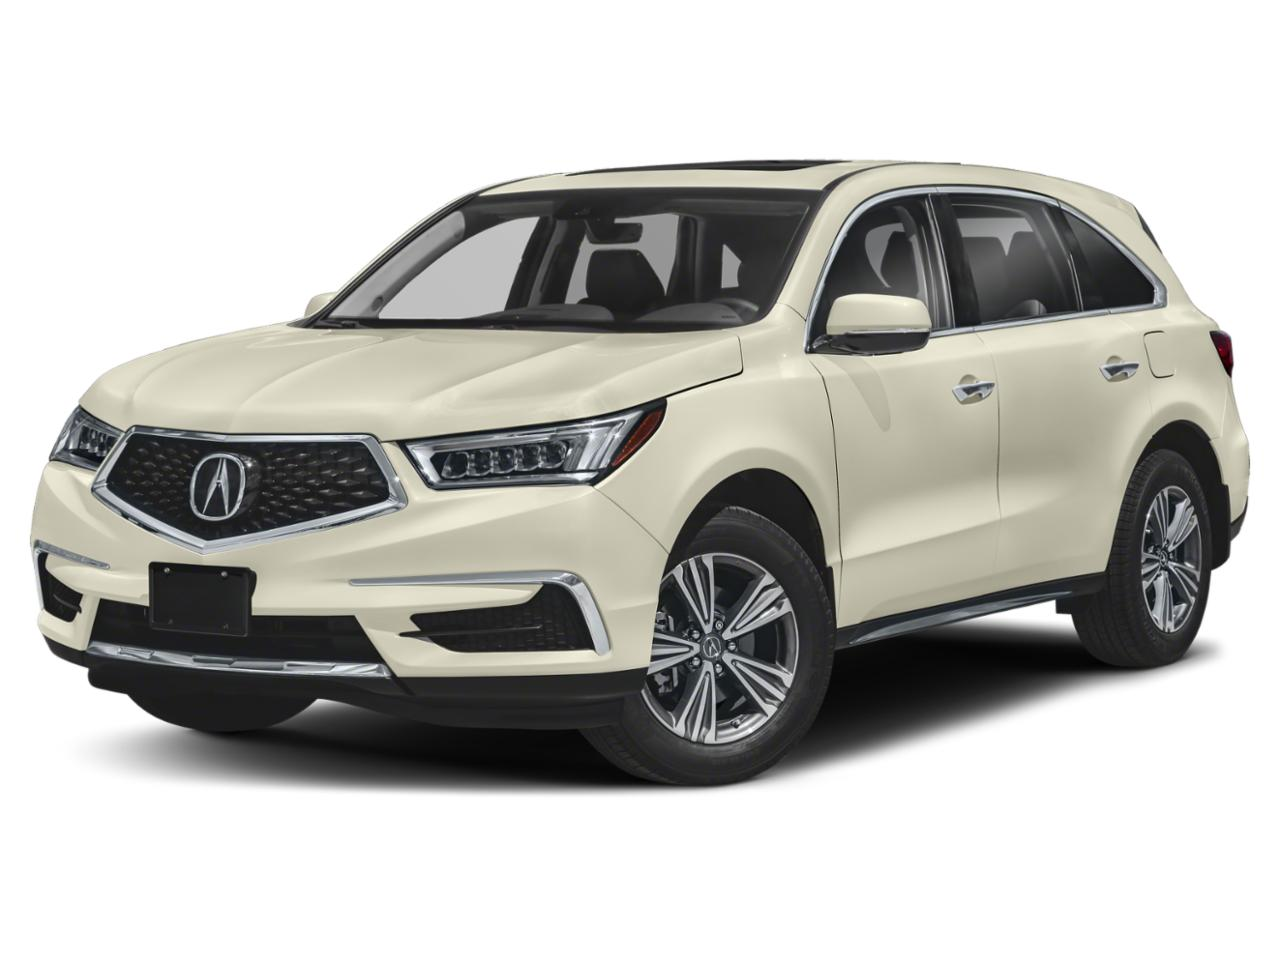 2019 Acura MDX Vehicle Photo in Houston, TX 77090